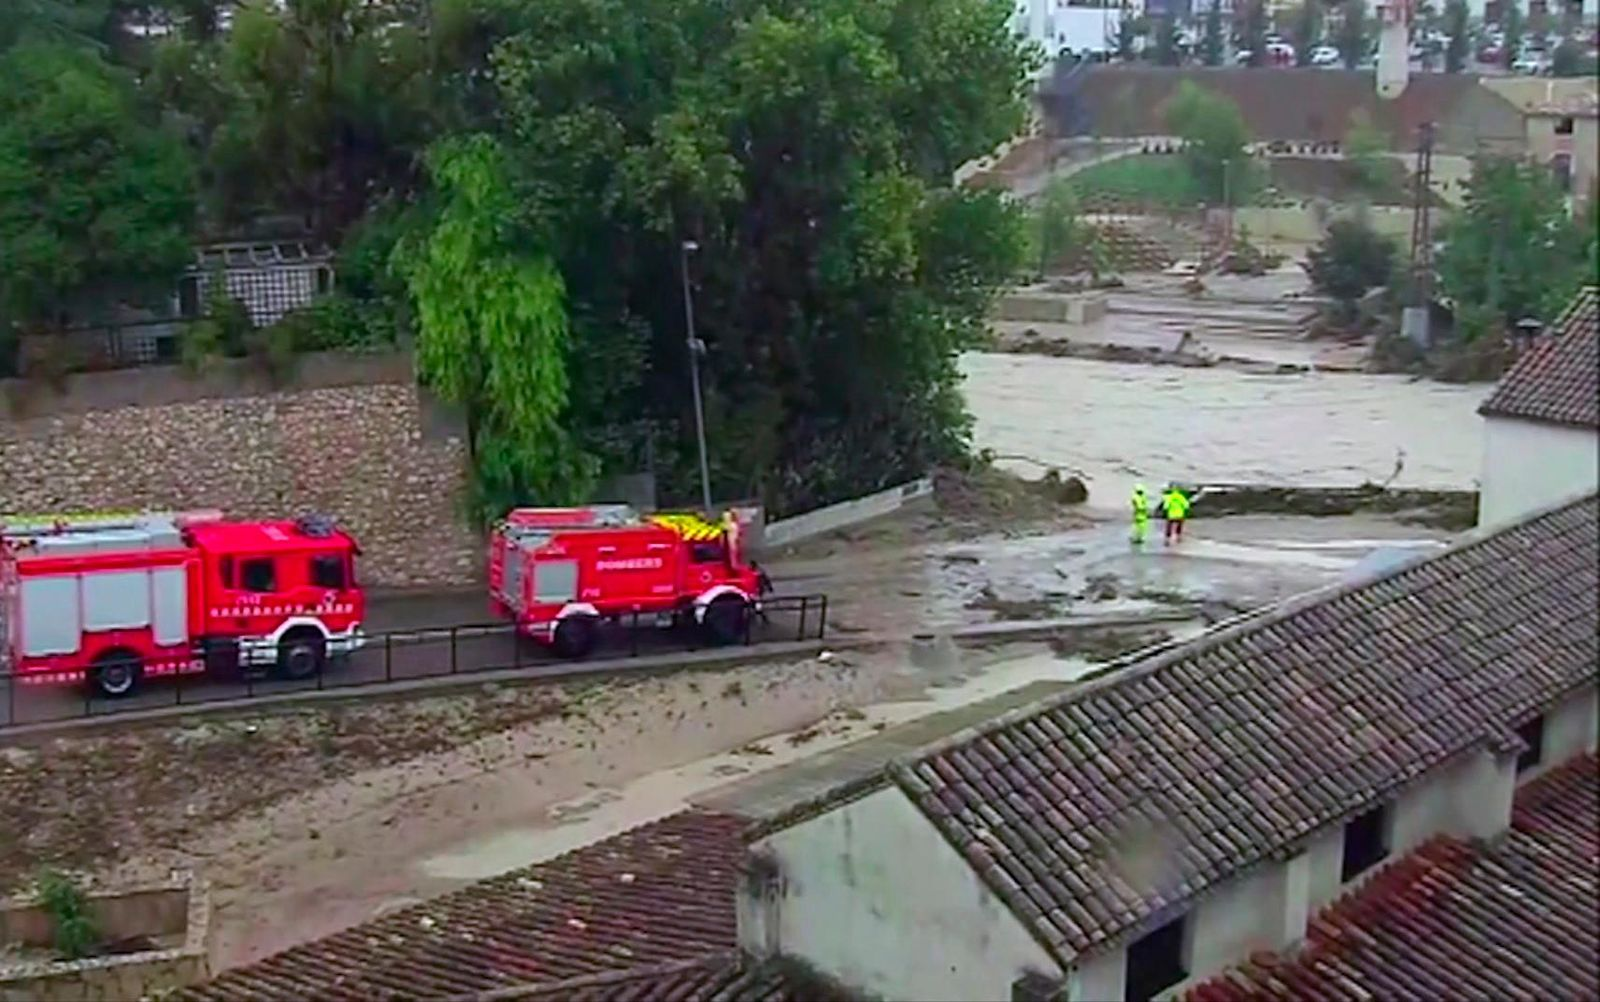 In this image made from video provided by Atlas, fire engines drive by a flooded river, in Ontiyente, Spain, Thursday, Sept. 12 2019.  A large area of southeast Spain was battered Thursday by what was forecast to be its heaviest rainfall in more than a century, with the storms wreaking widespread destruction and killing at least two people. (Atlas via AP)